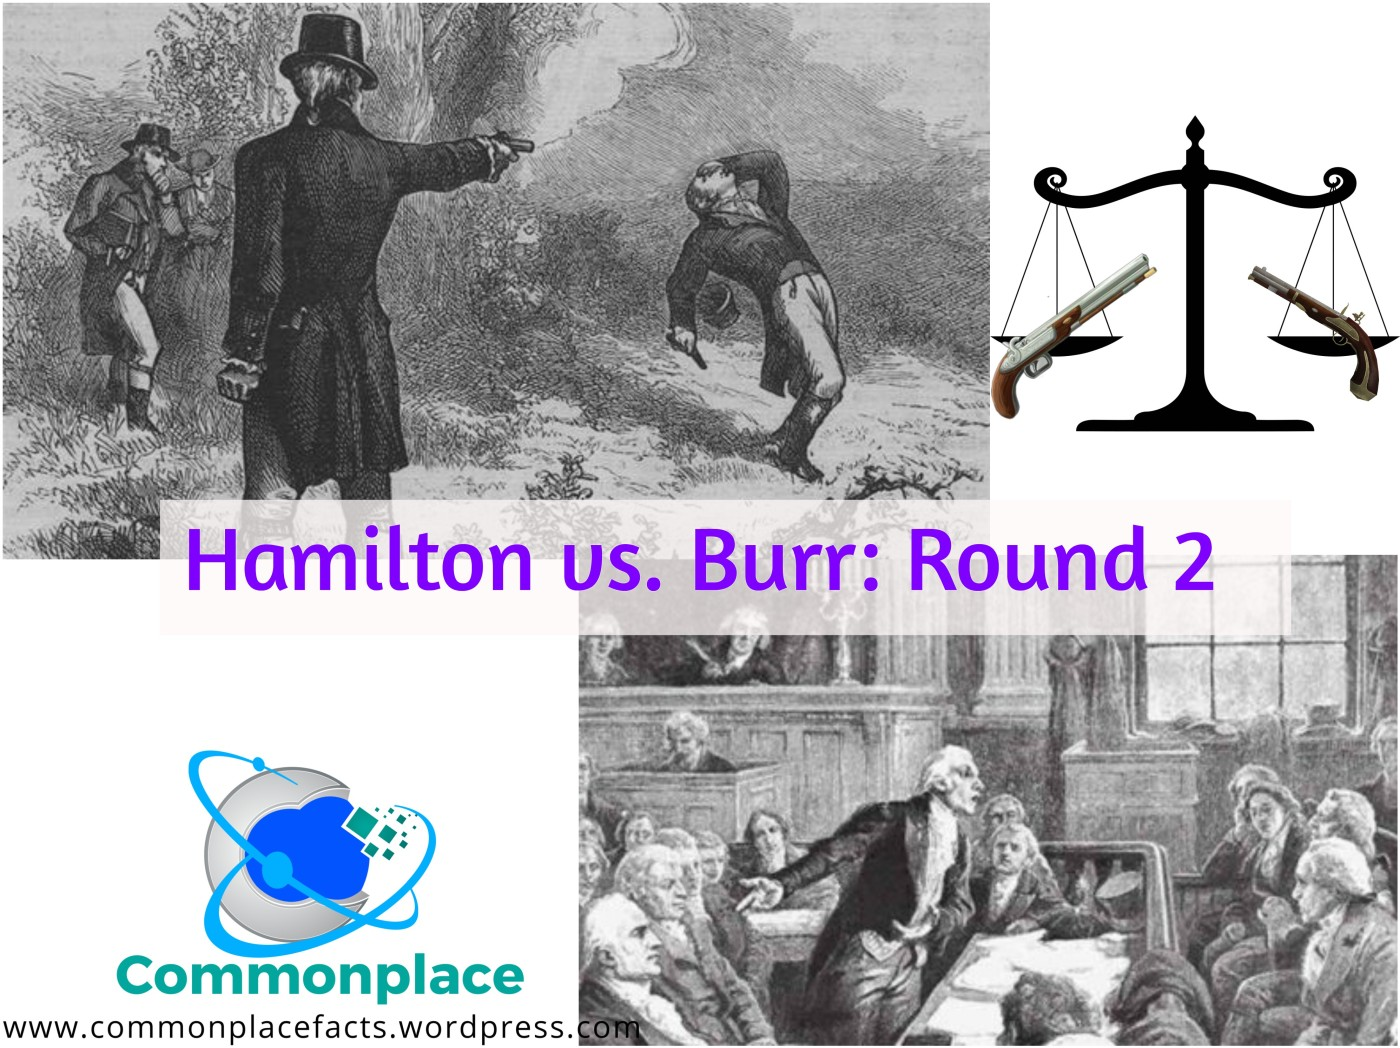 #Hamilton #Burr #duels #divorce #court #funfacts #history